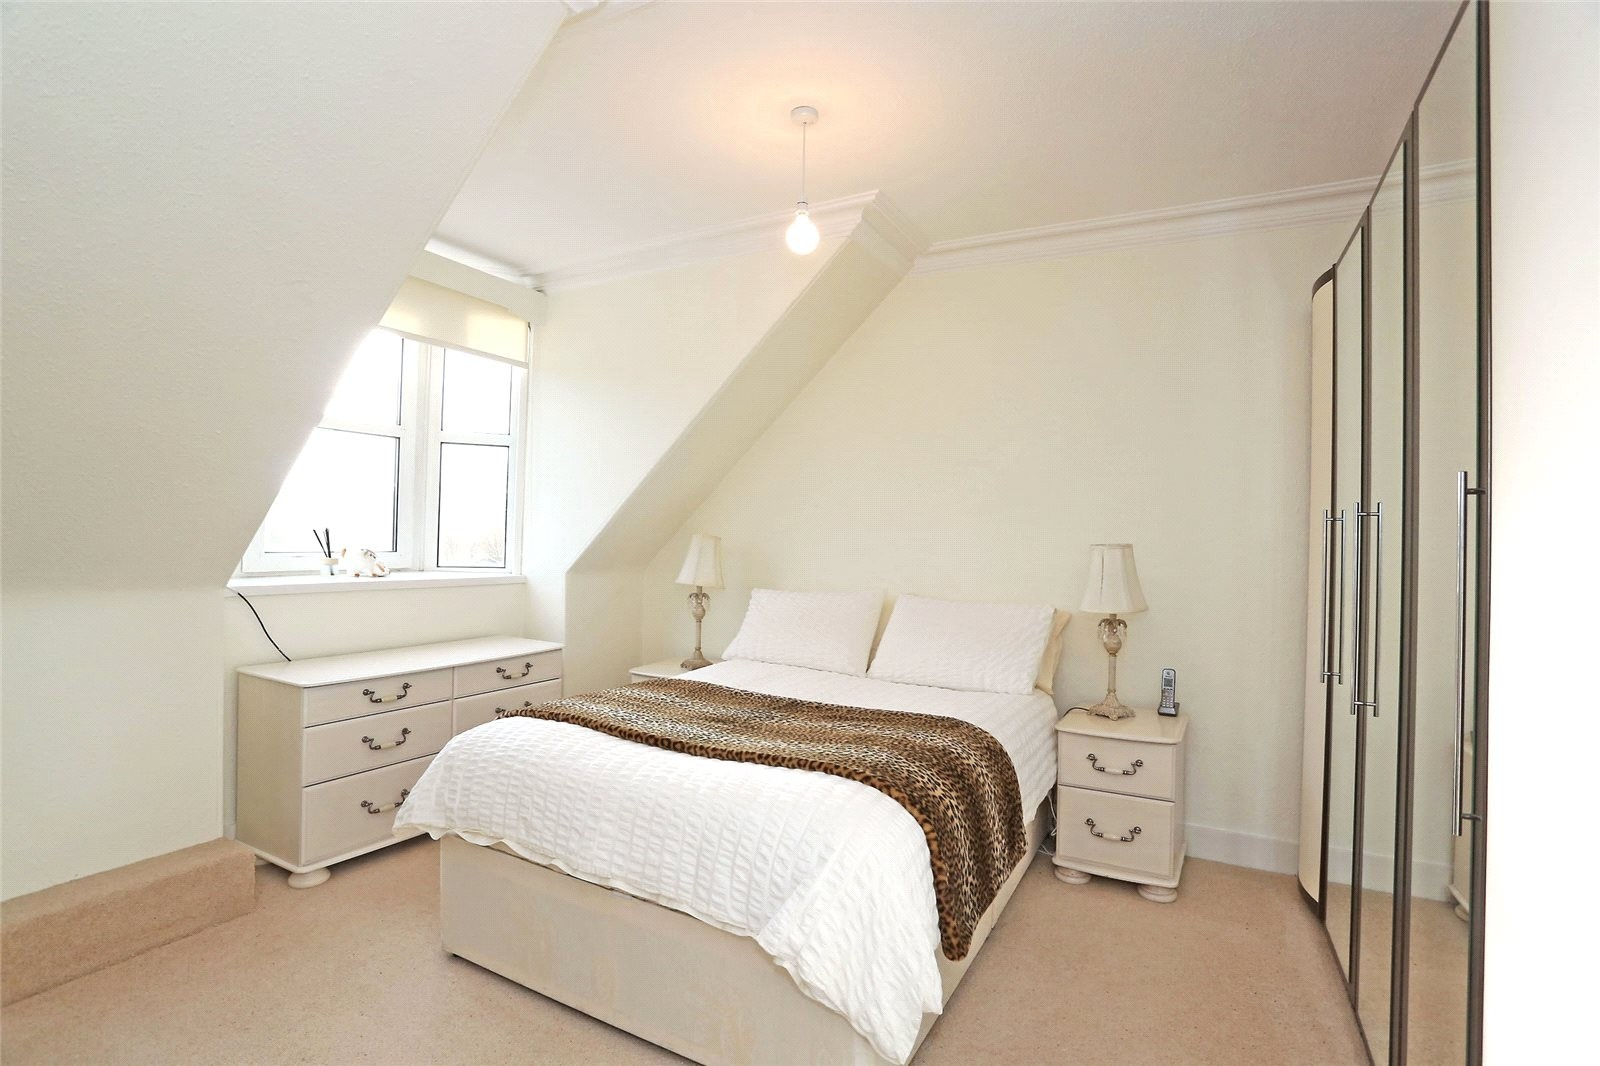 Guest House in the heart of Banchory with Airbnb Opportunity - Image 3